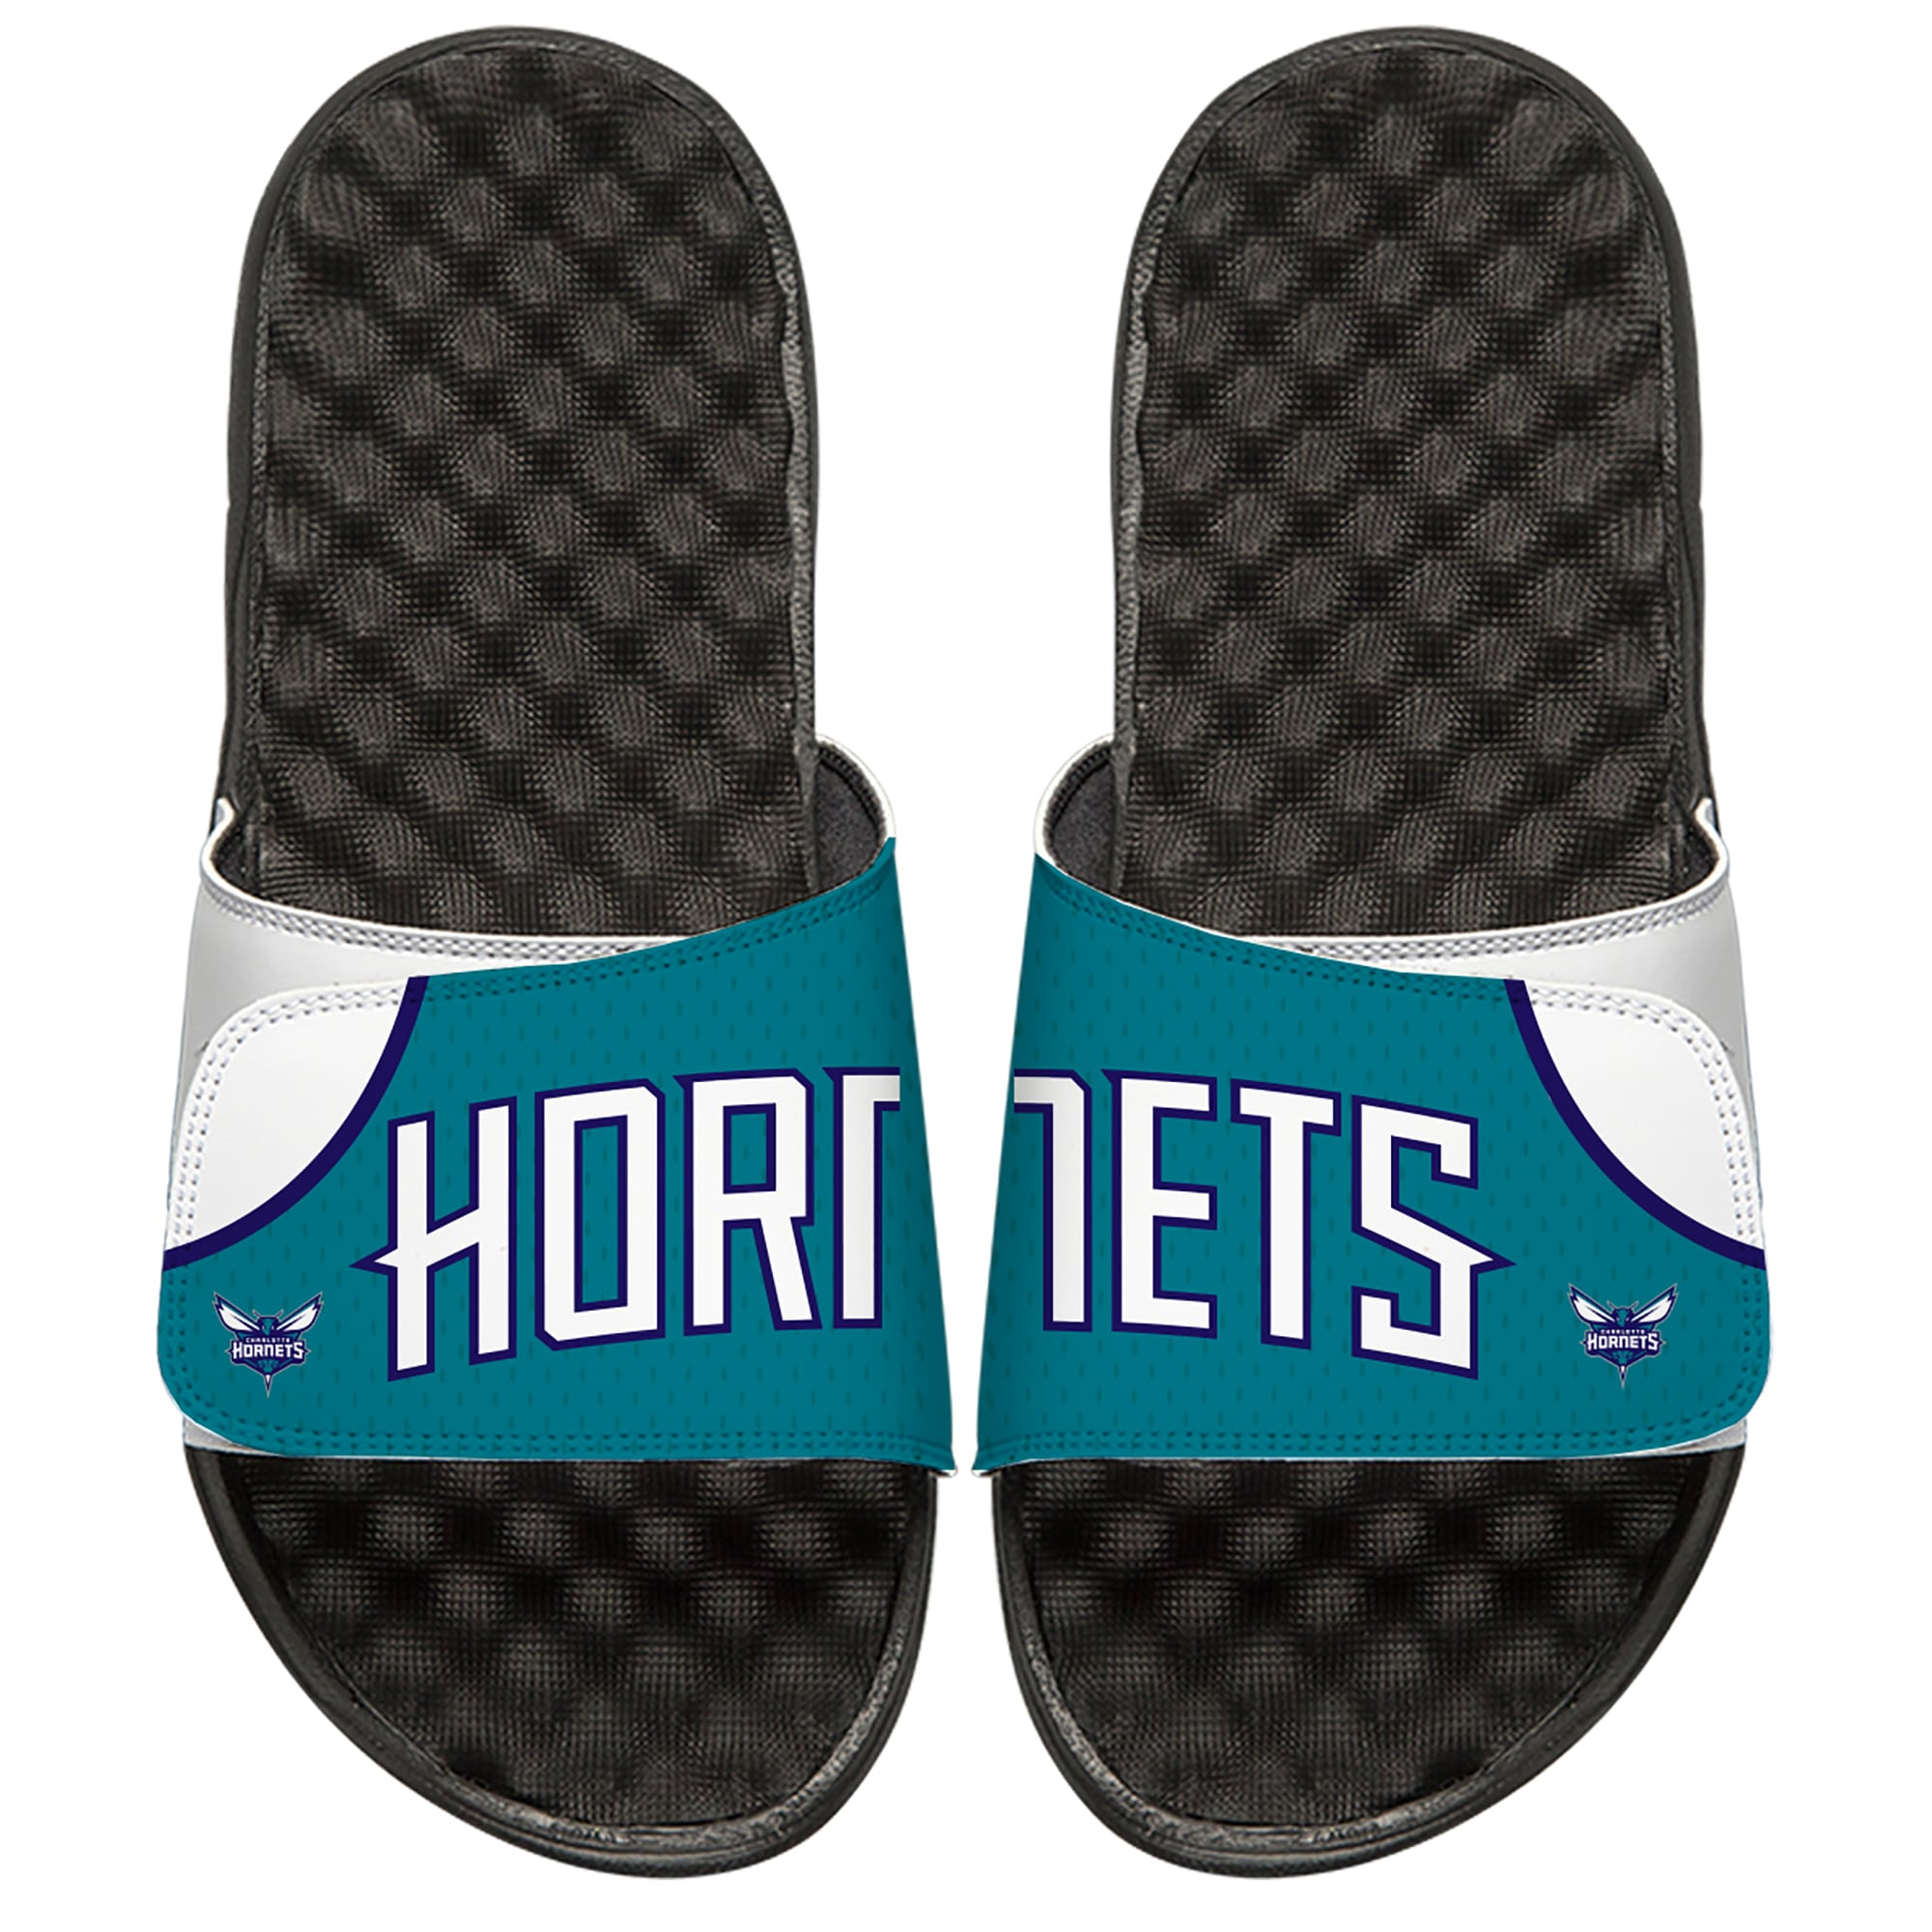 Charlotte Hornets ISlide Away Jersey Split Slide Sandals - White